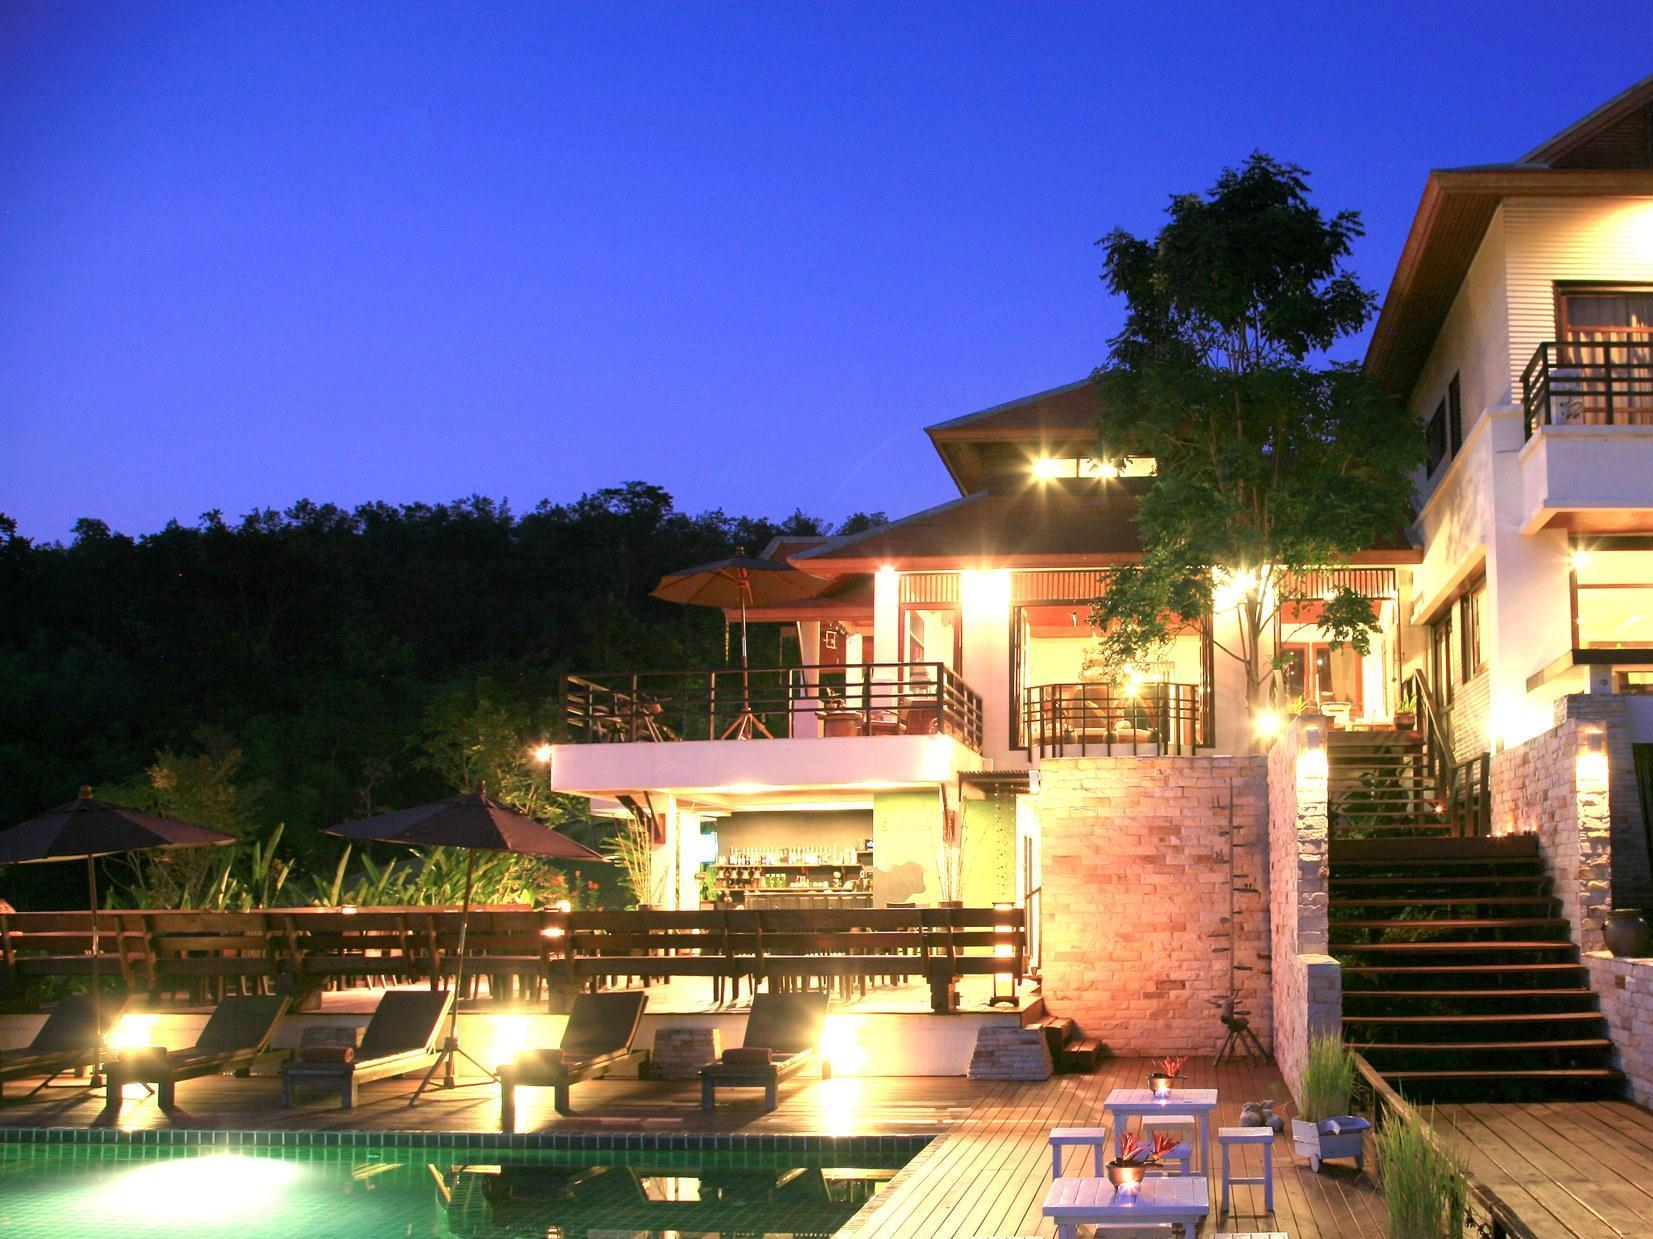 Hotel PhuNaCome Resort